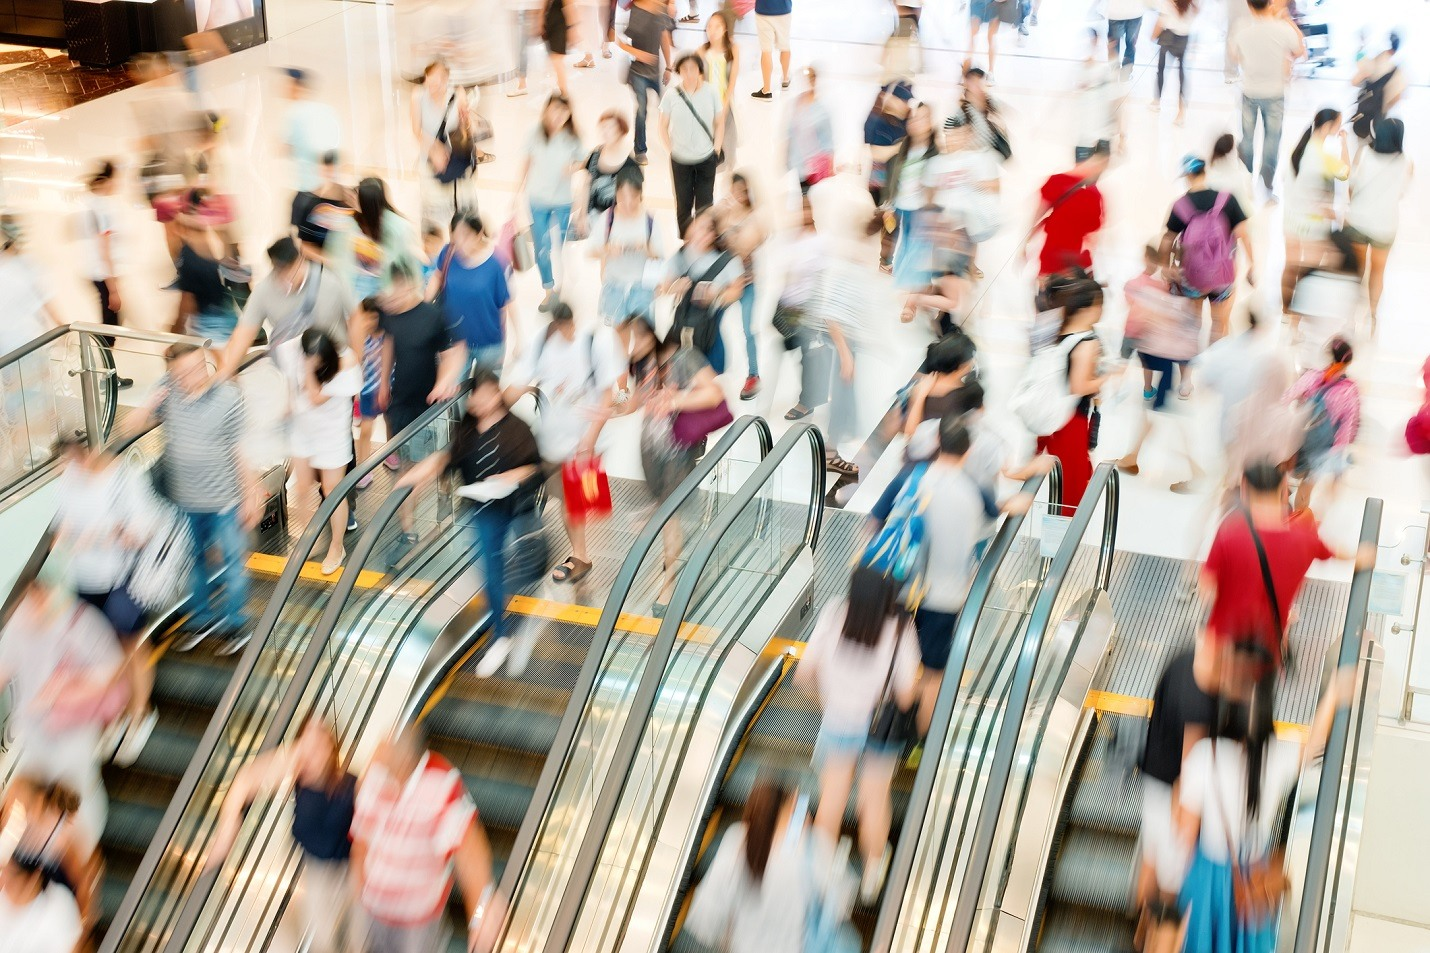 This is a time-lapse photo of shoppers going up and down a mall escalator. The image symbolizes segmenting consumer markets.